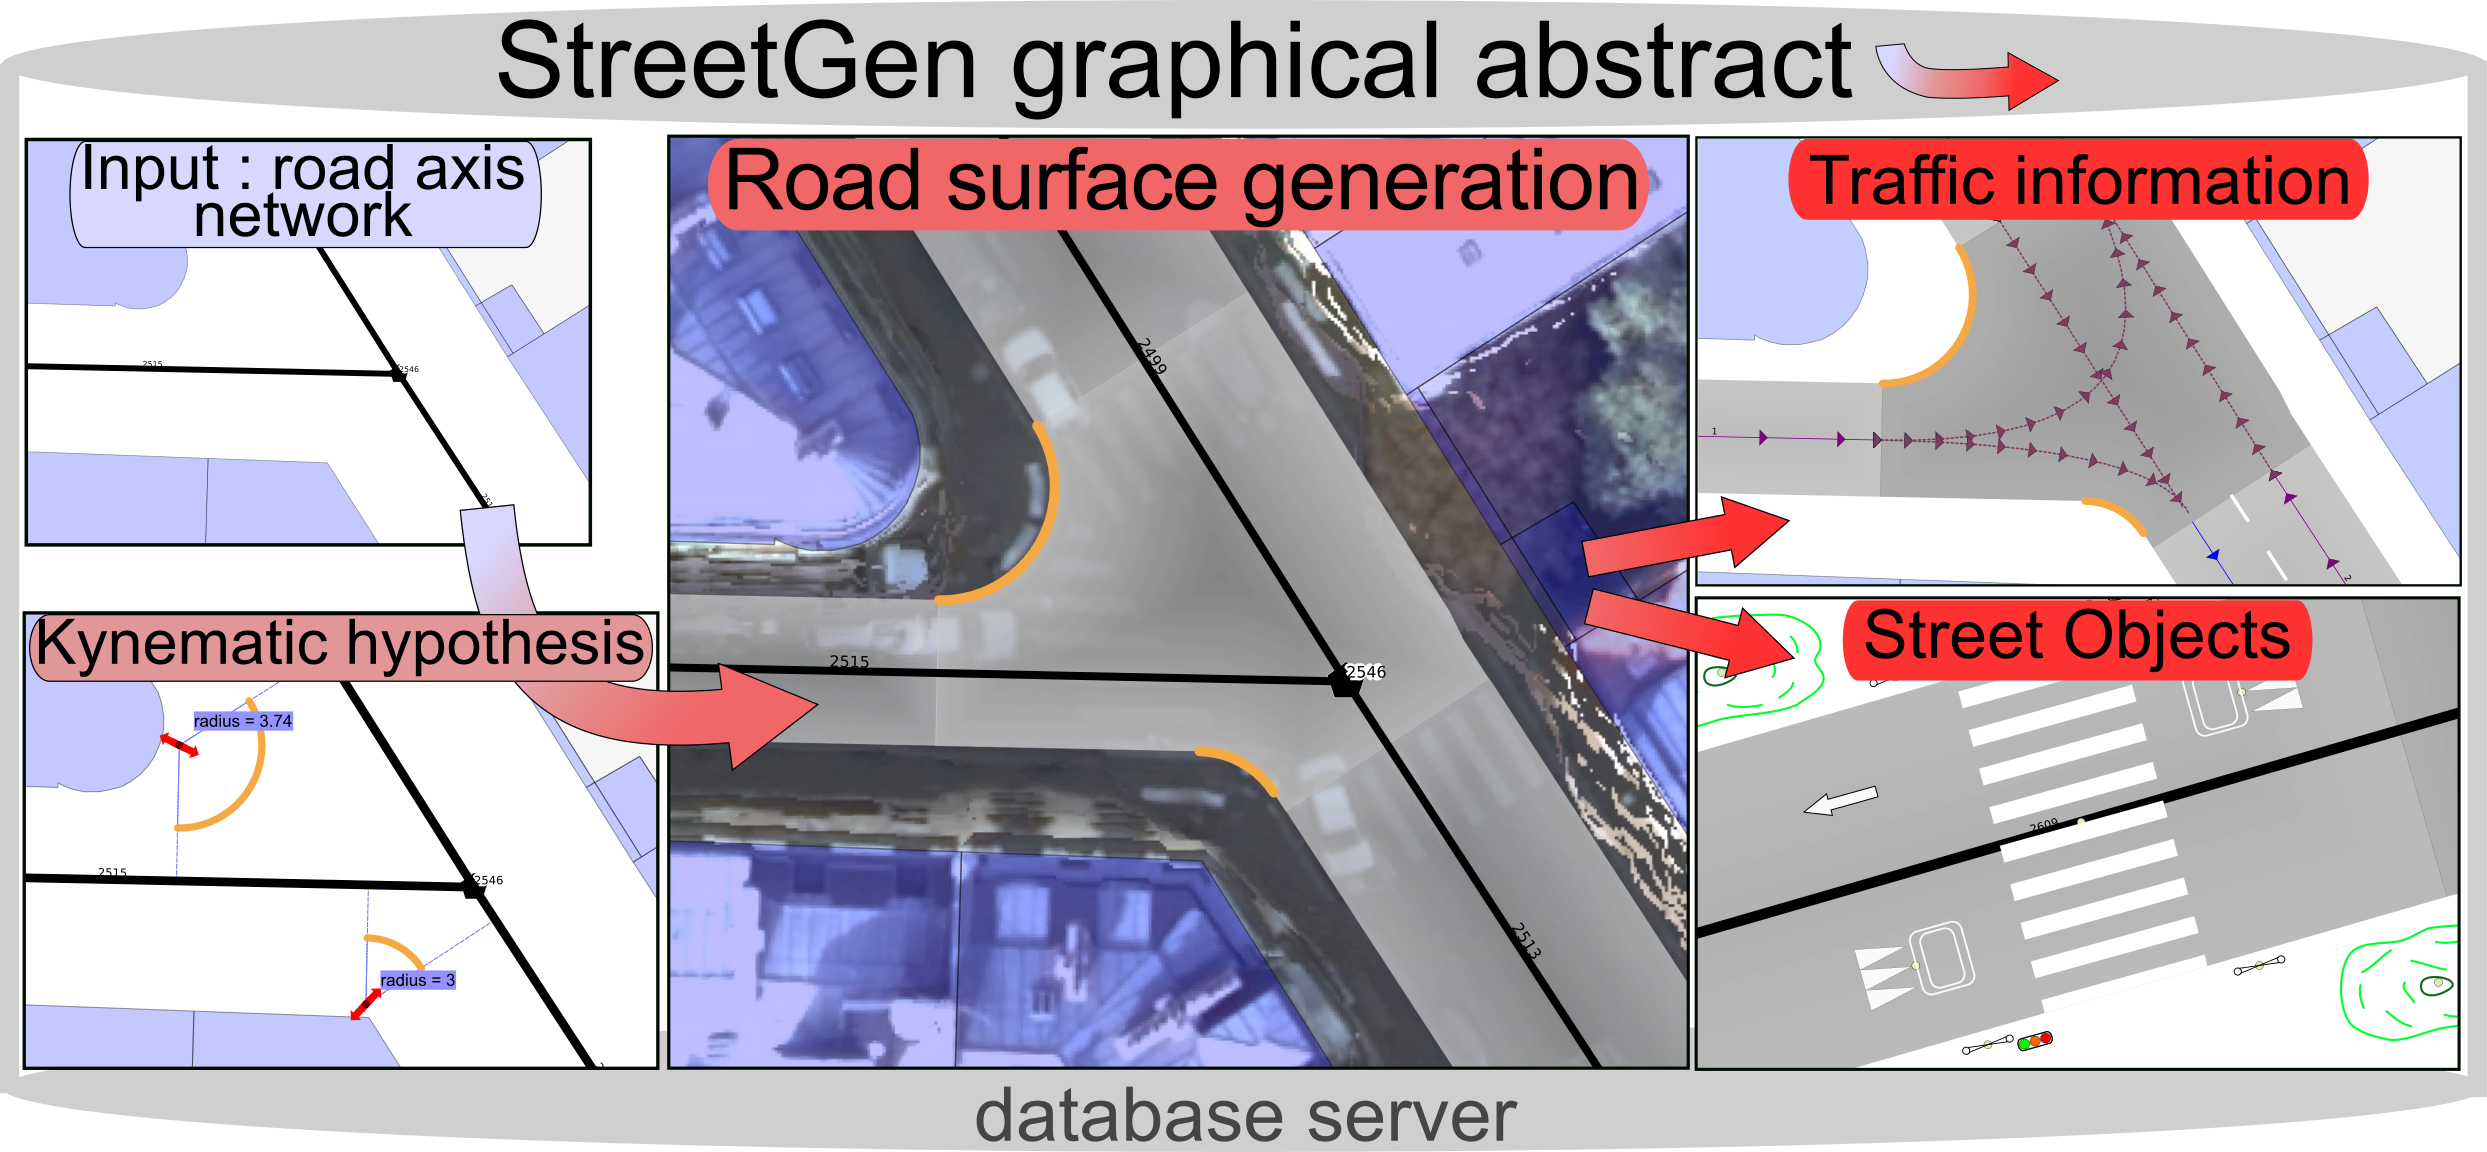 StreetGen Graphical abstract